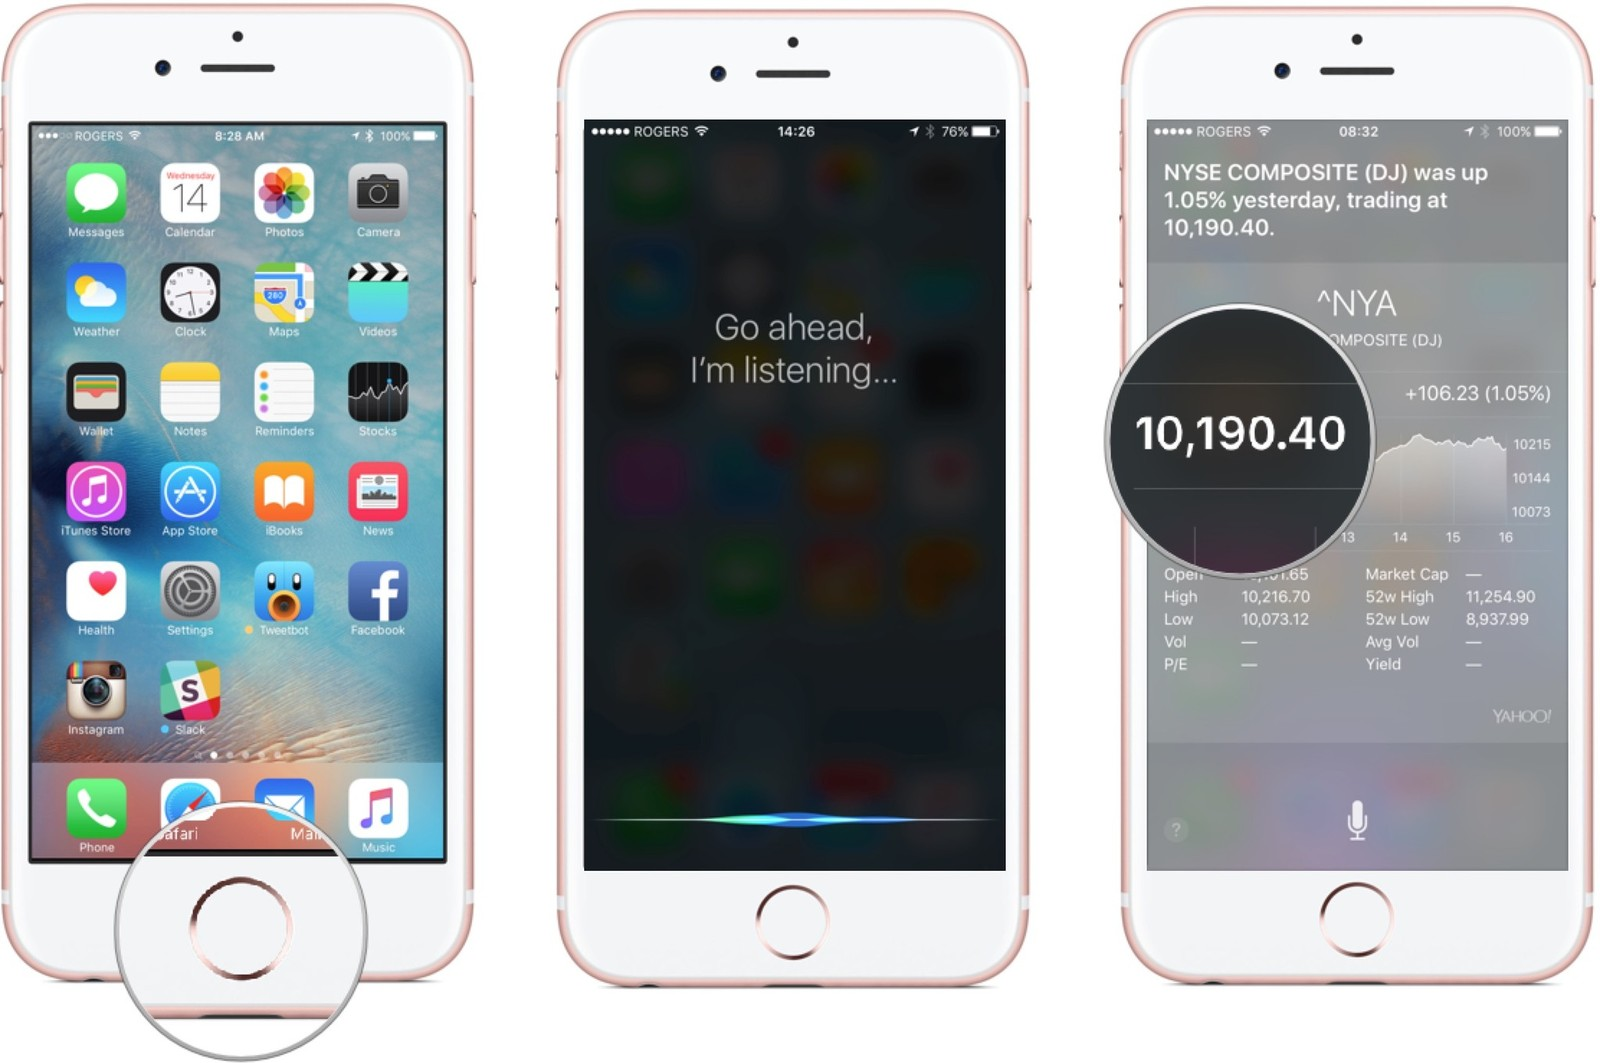 Hold down the Home button, ask Siri about the market, tap on the widget to go to the app.